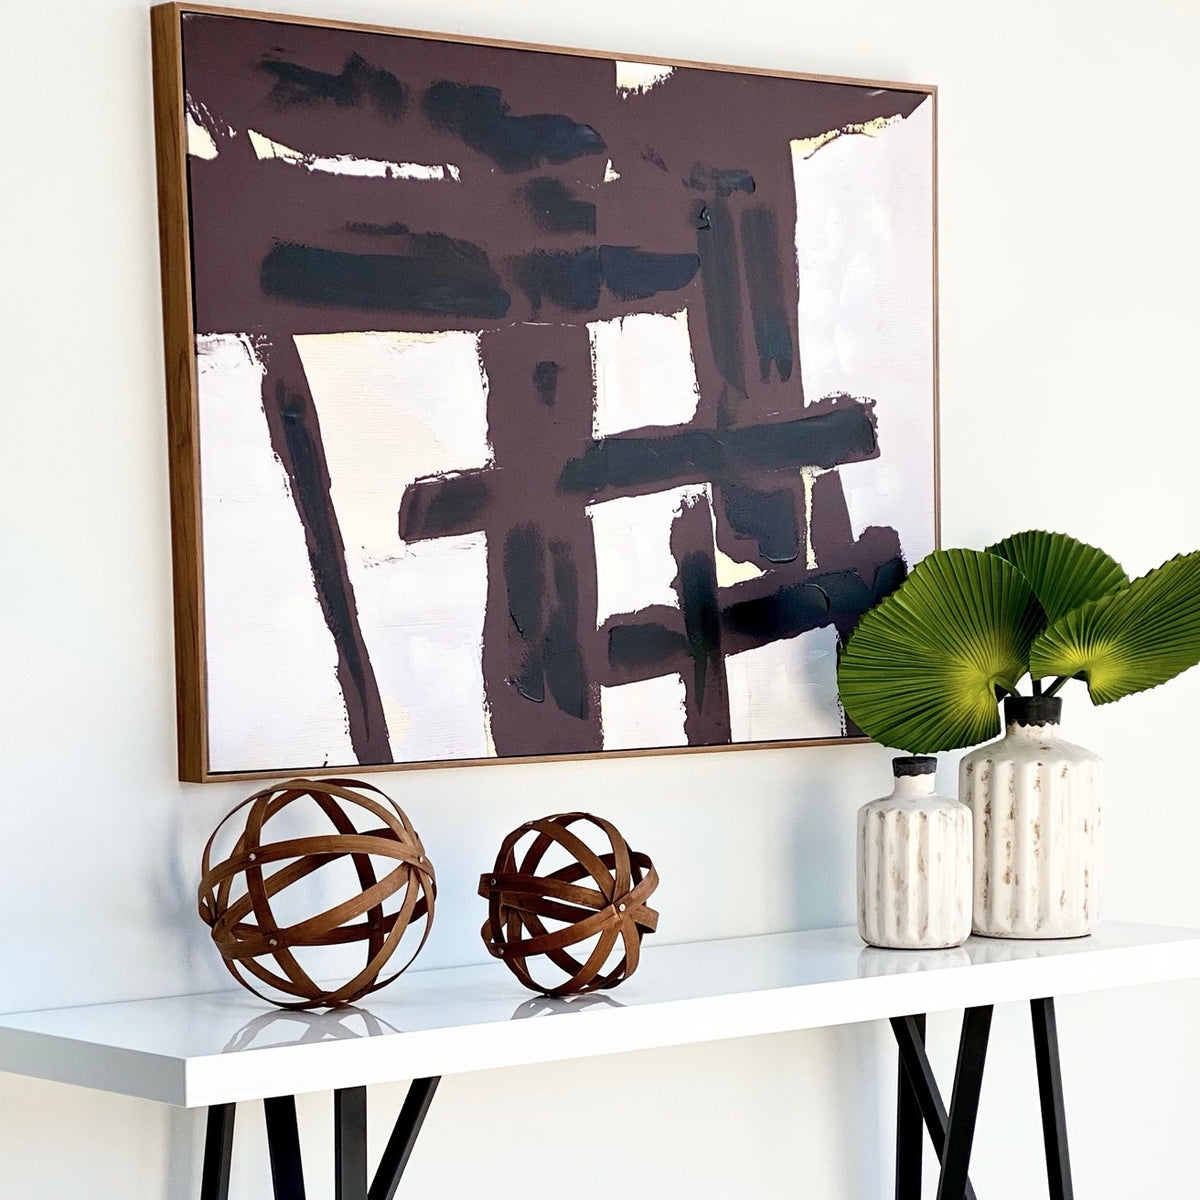 Minimalist Modern Black and White Abstract Wall Art